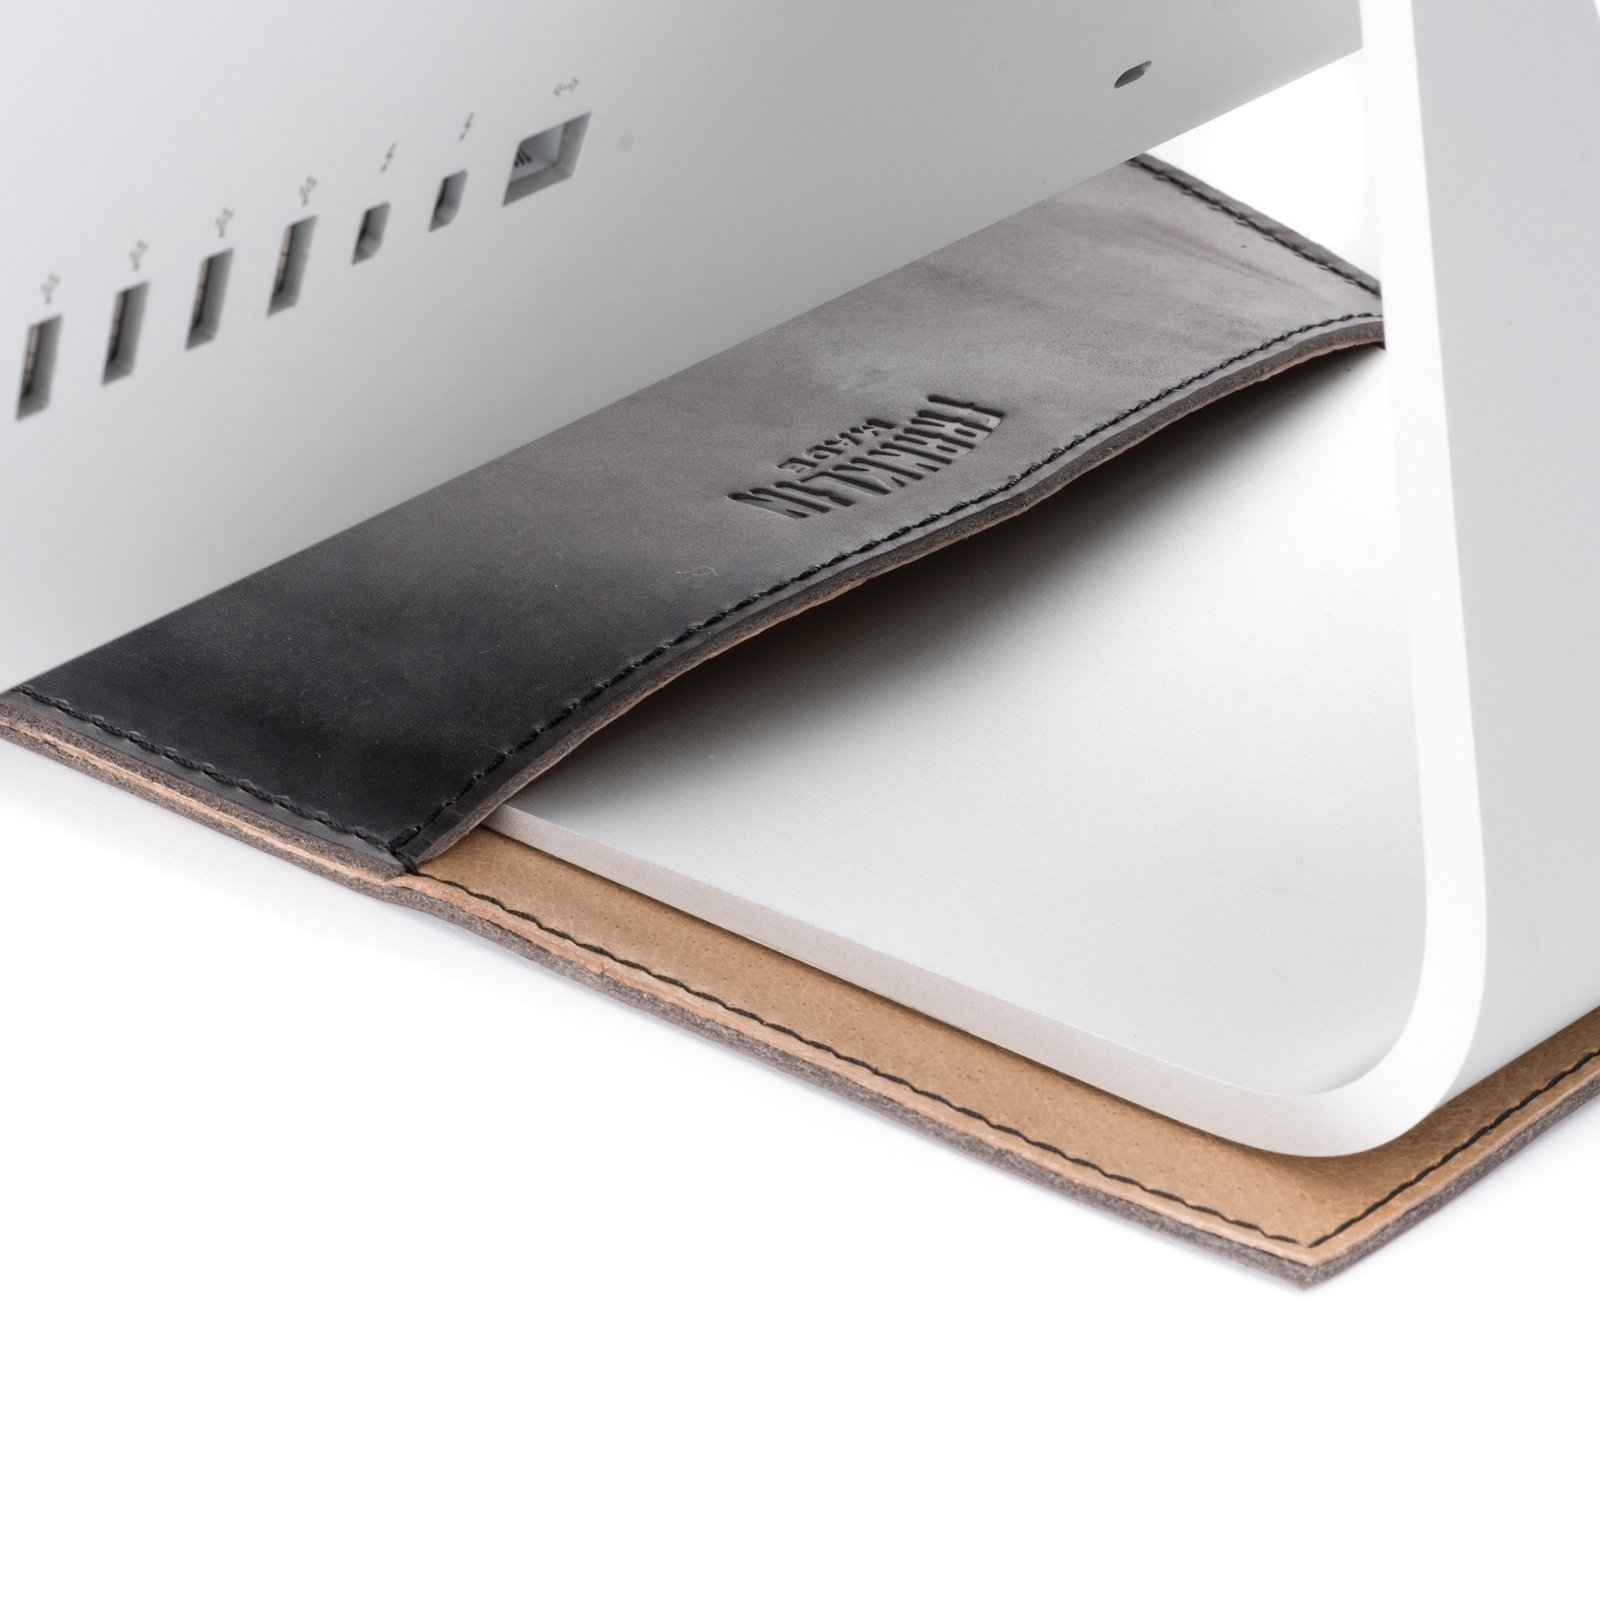 100% Full Grain Black Leather 4 Piece 27'' Apple Computer Desktop Set - Made in USA by Franklin Made (Image #1)